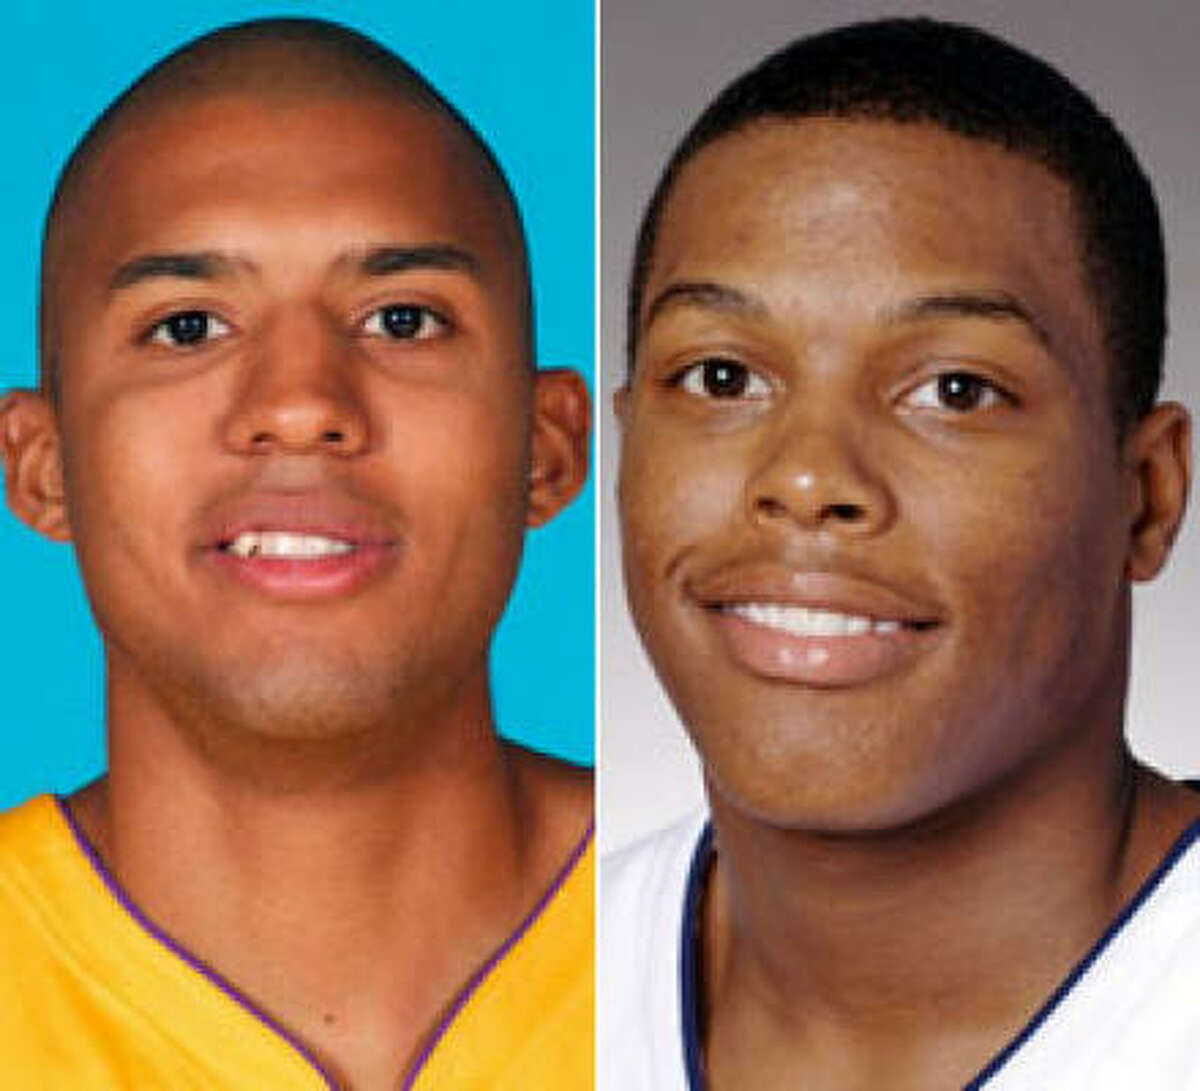 The Rockets are getting Brian Cook, left, from the Magic and Kyle Lowry from the Grizzlies.